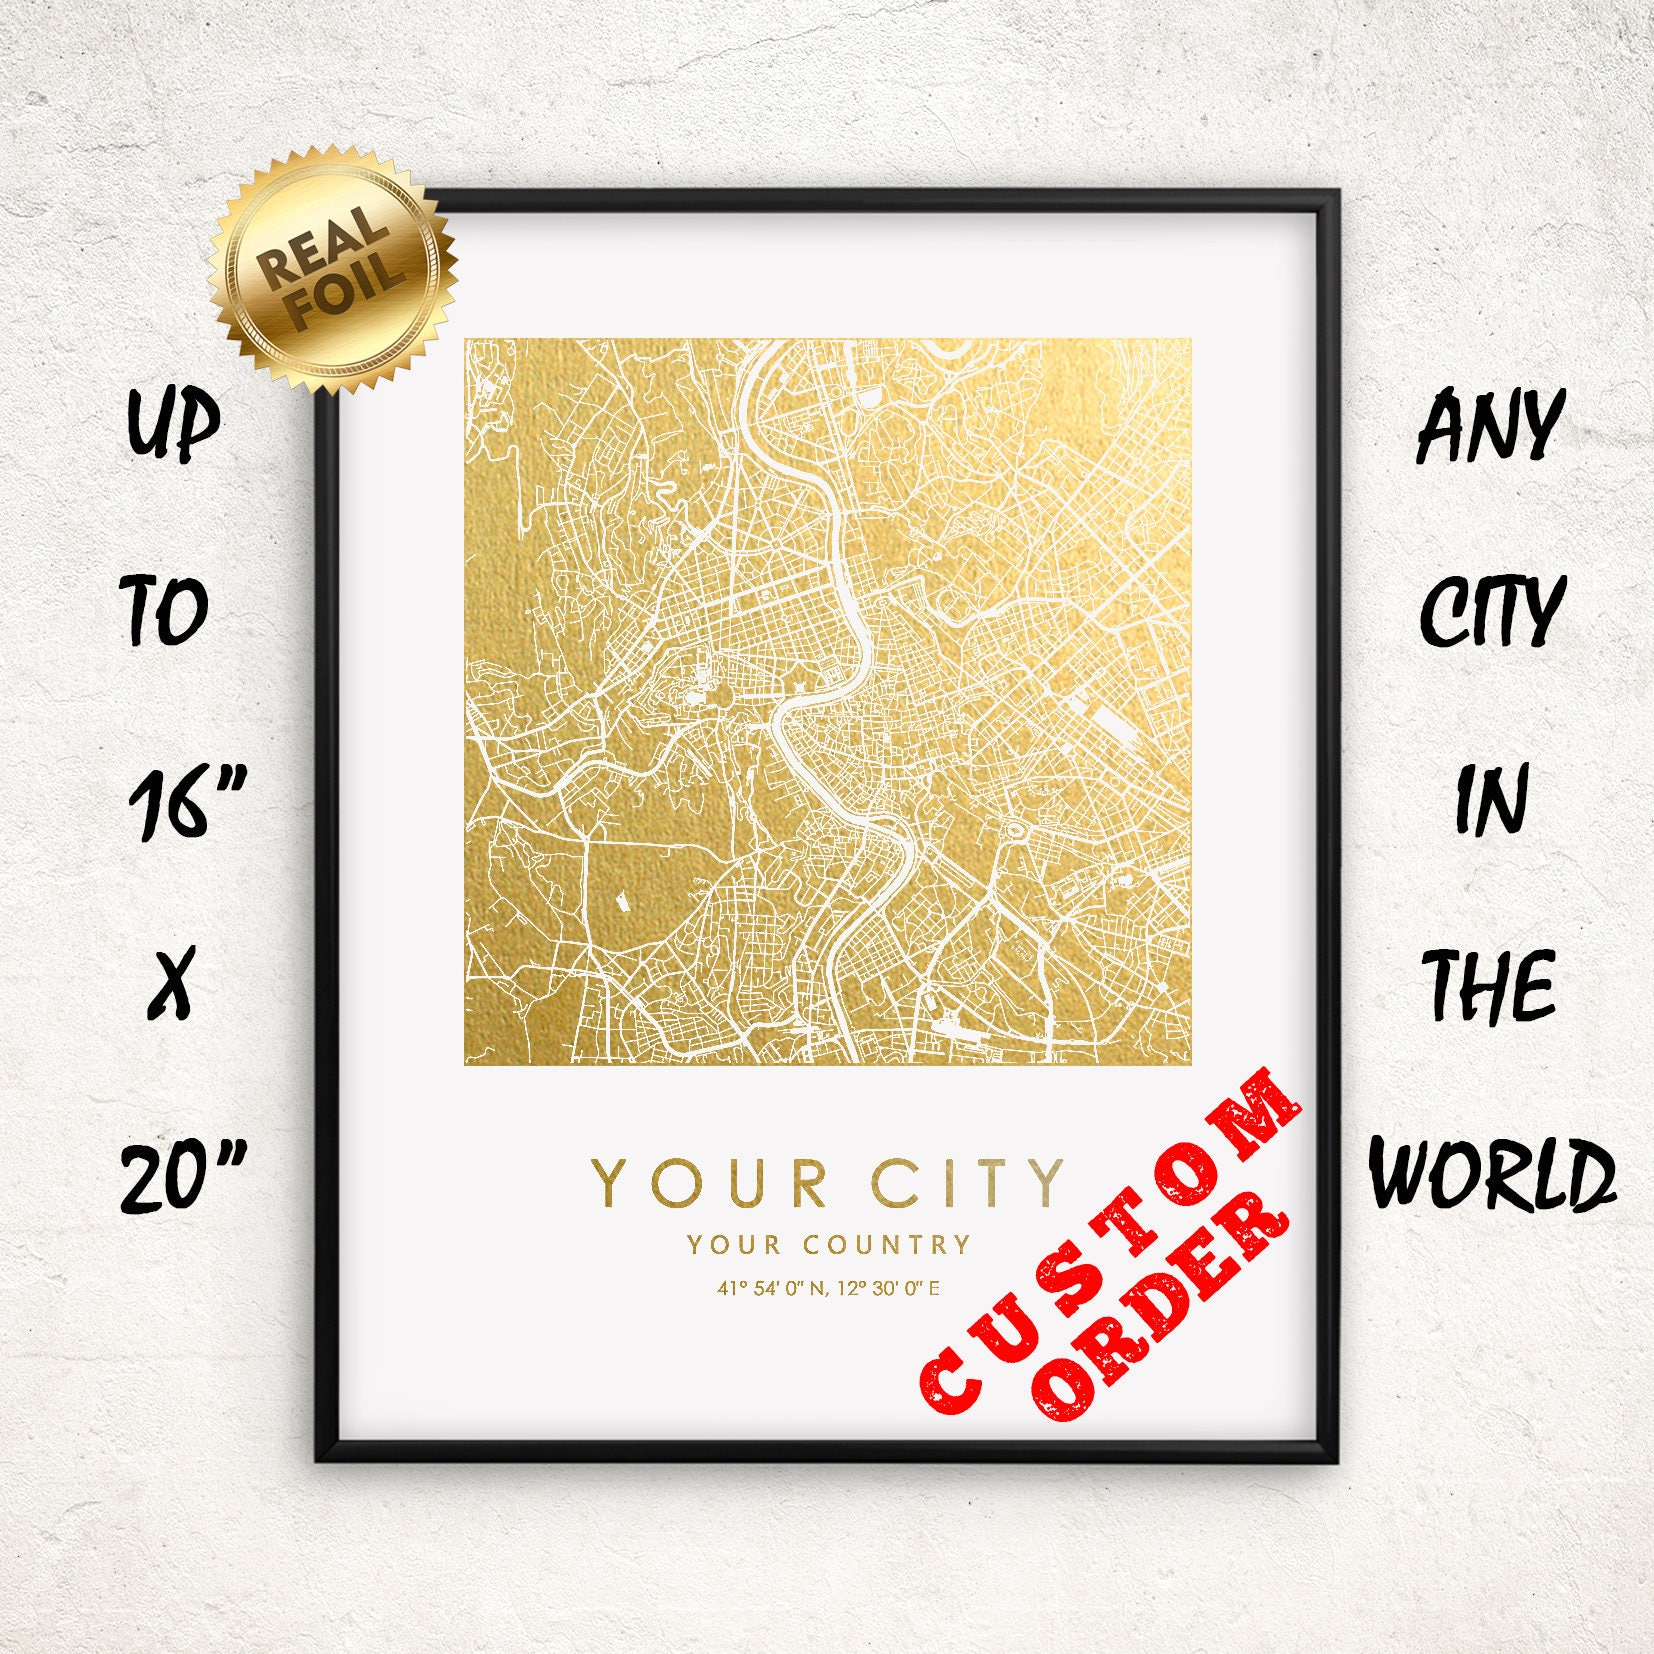 Custom Square City Map Gold and Silver Real Foil Print up to | Etsy